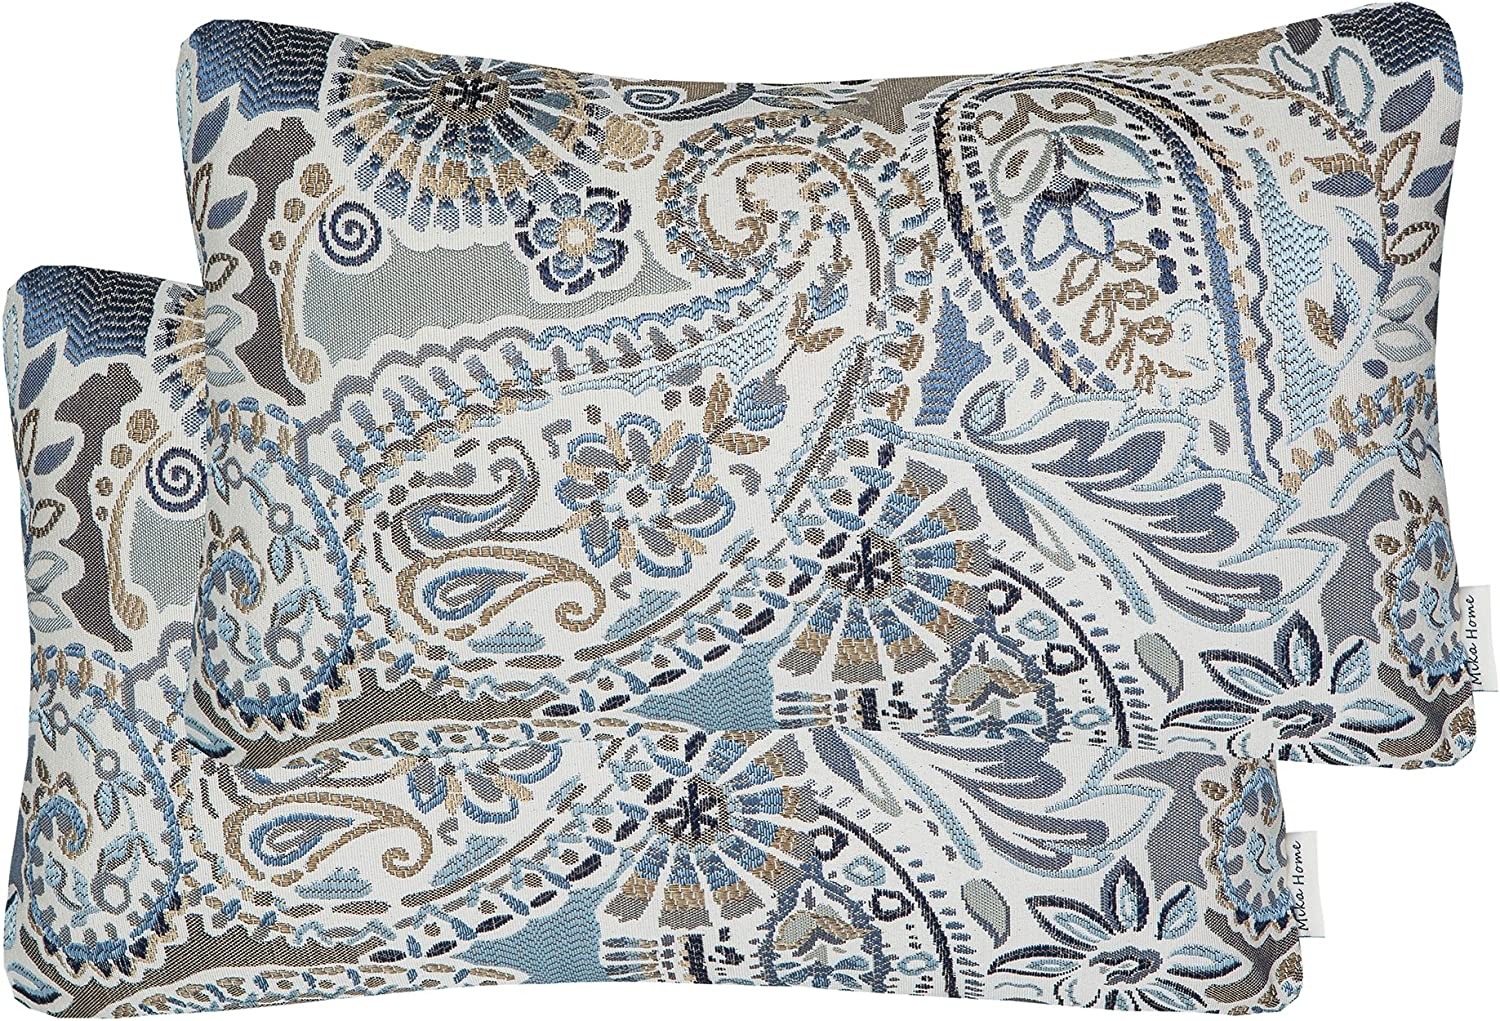 Mika Home Pack of 2 Oblong Rectangular Throw Pillow Cover Cushion Cases for Sofa Couch Chair,Paisley Pattern,12x20 Inches,Blue Brown Cream Multicolor